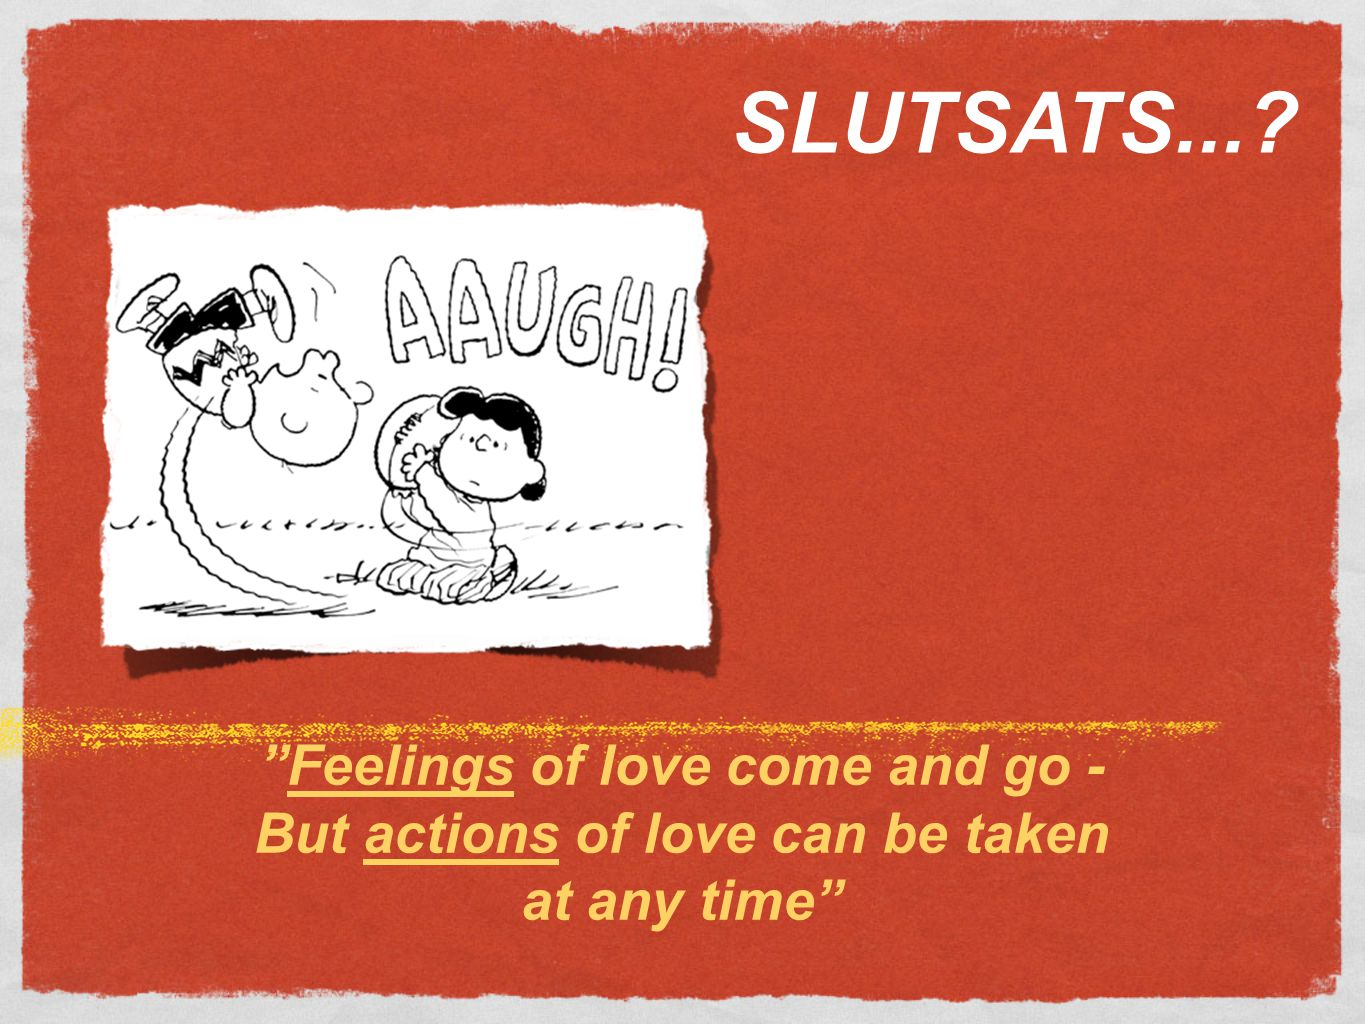 Feelings of love come and go - But actions of love can be taken at any time SLUTSATS...?